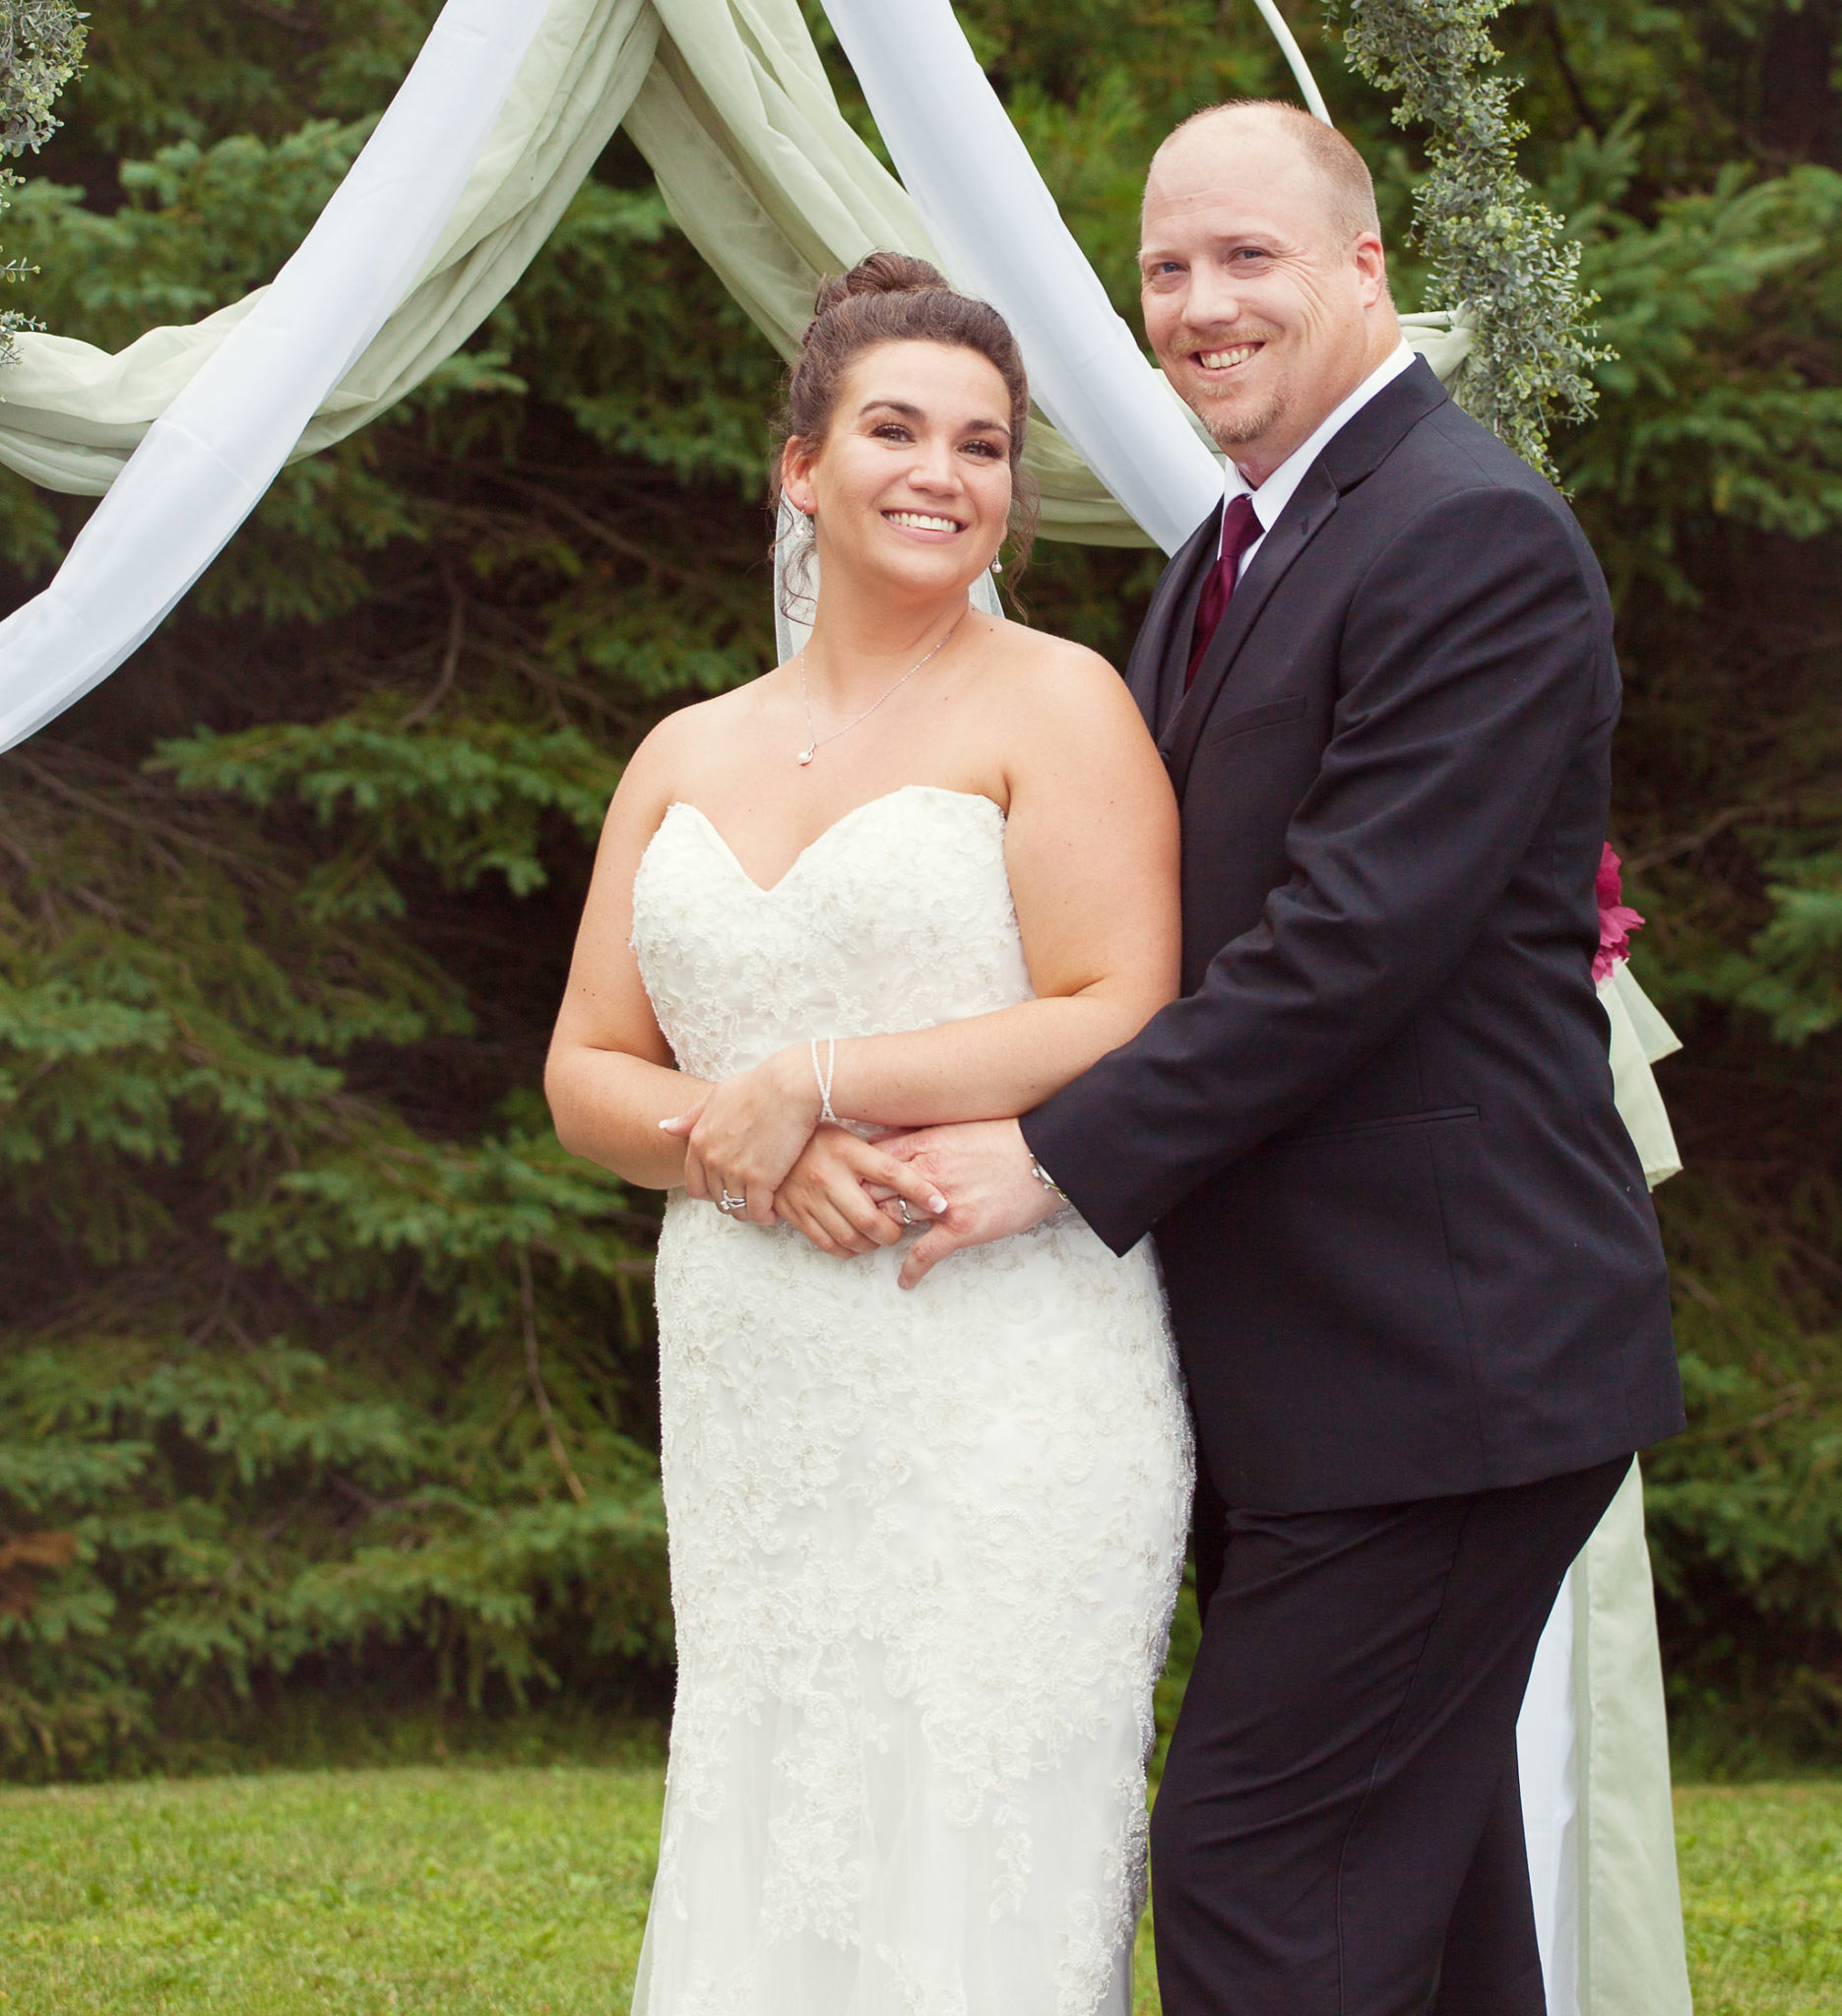 Ashley Nemer '10 and Thomas Twombly